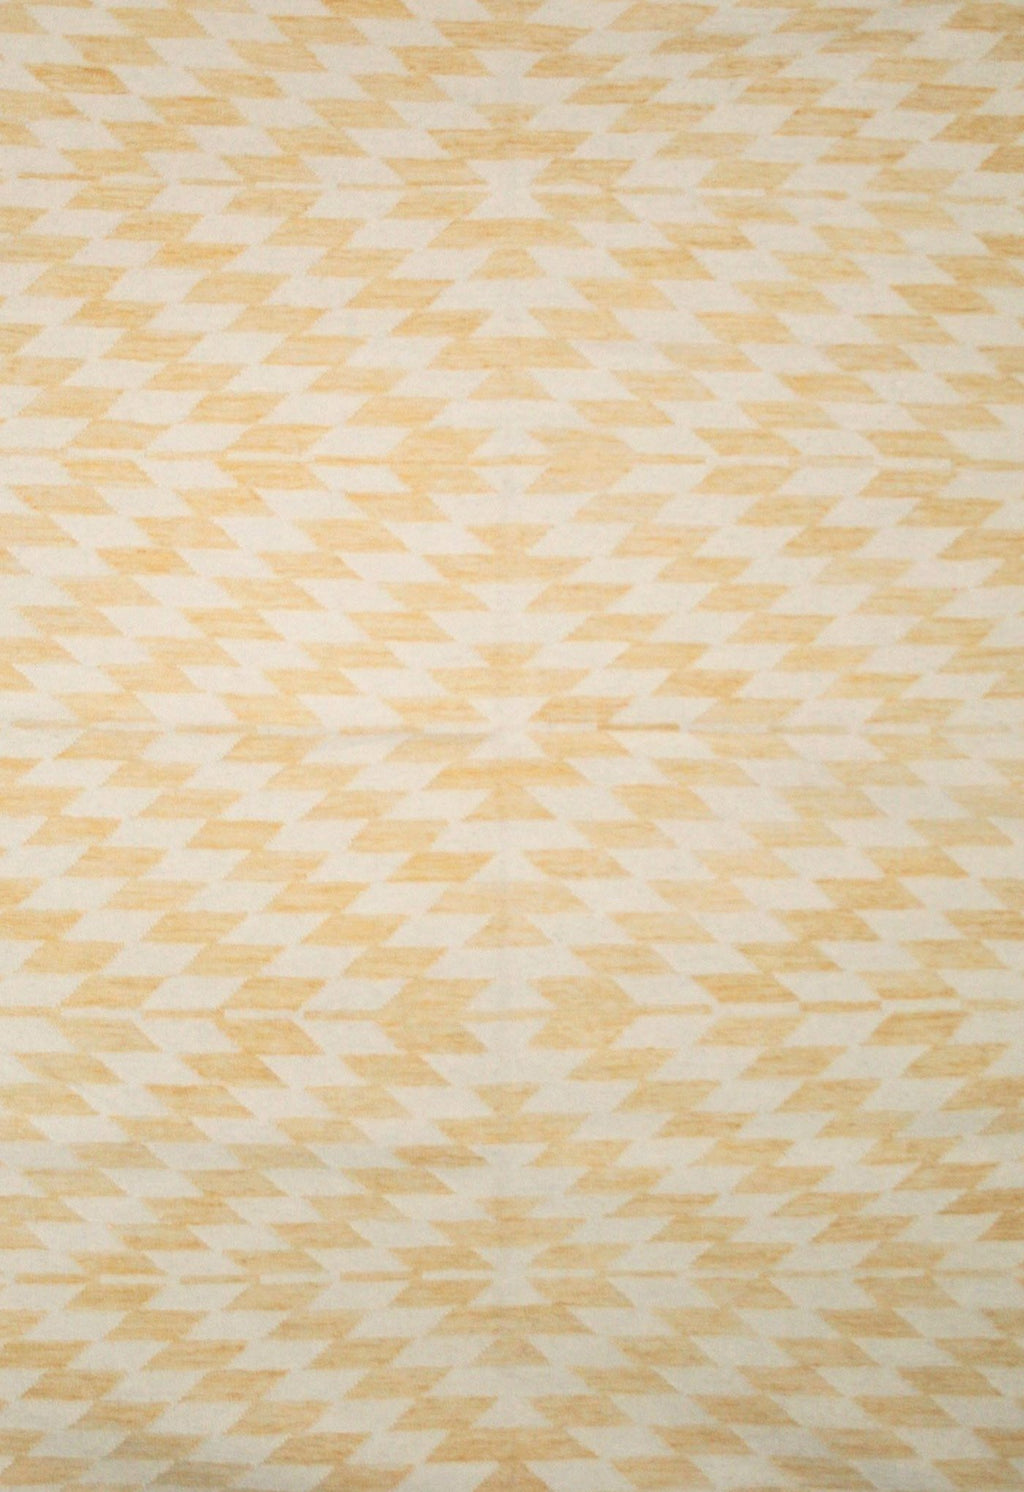 geometric rug yellow design